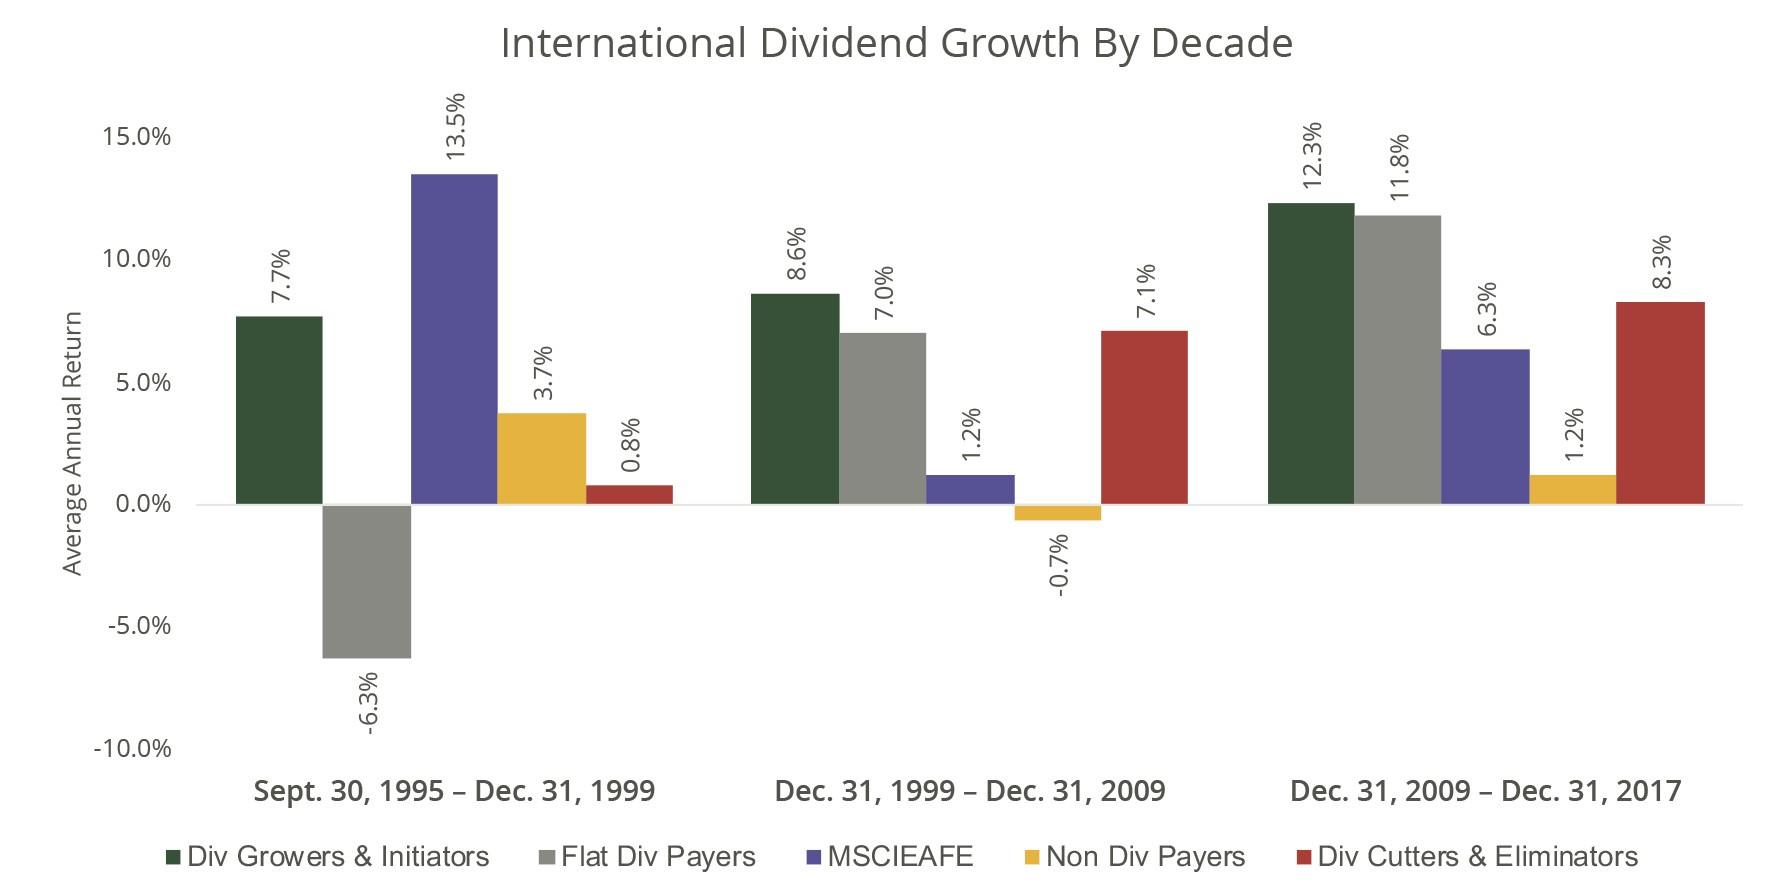 International Dividend Growth by Decade